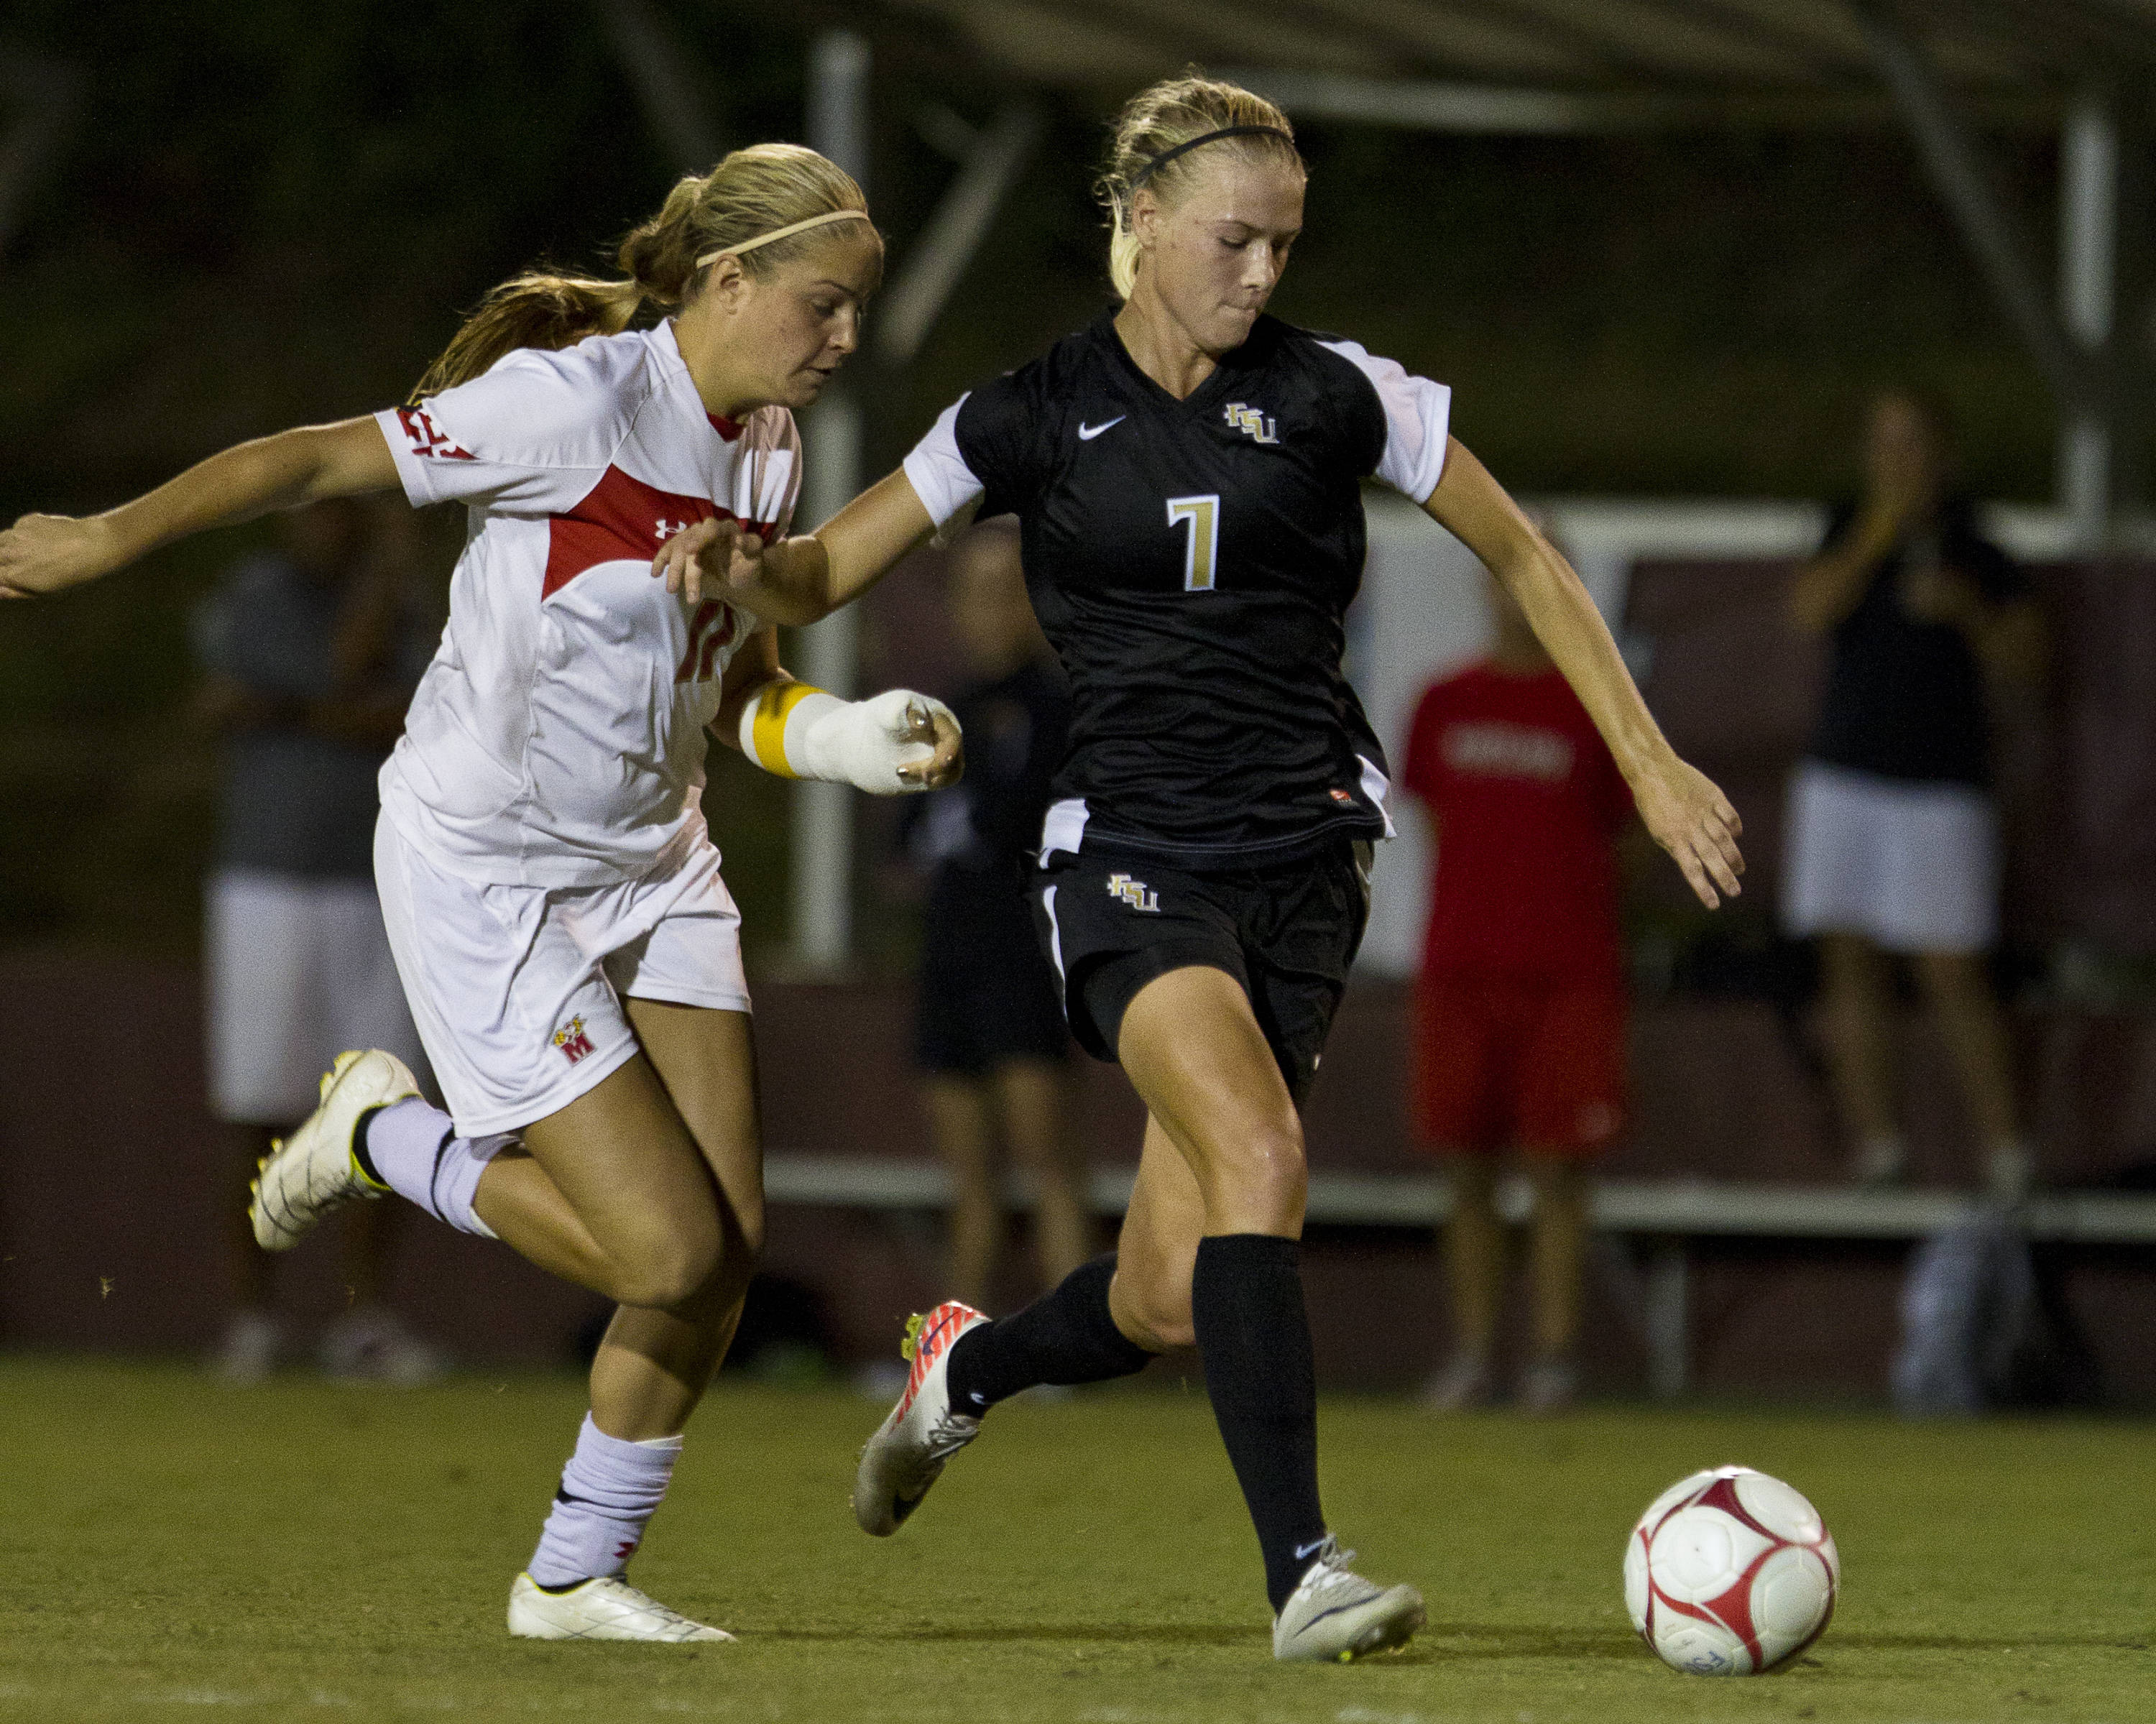 Dagny Brynjarsdottir (7) carries the ball down field during the game against Maryland on October 13, 2011.